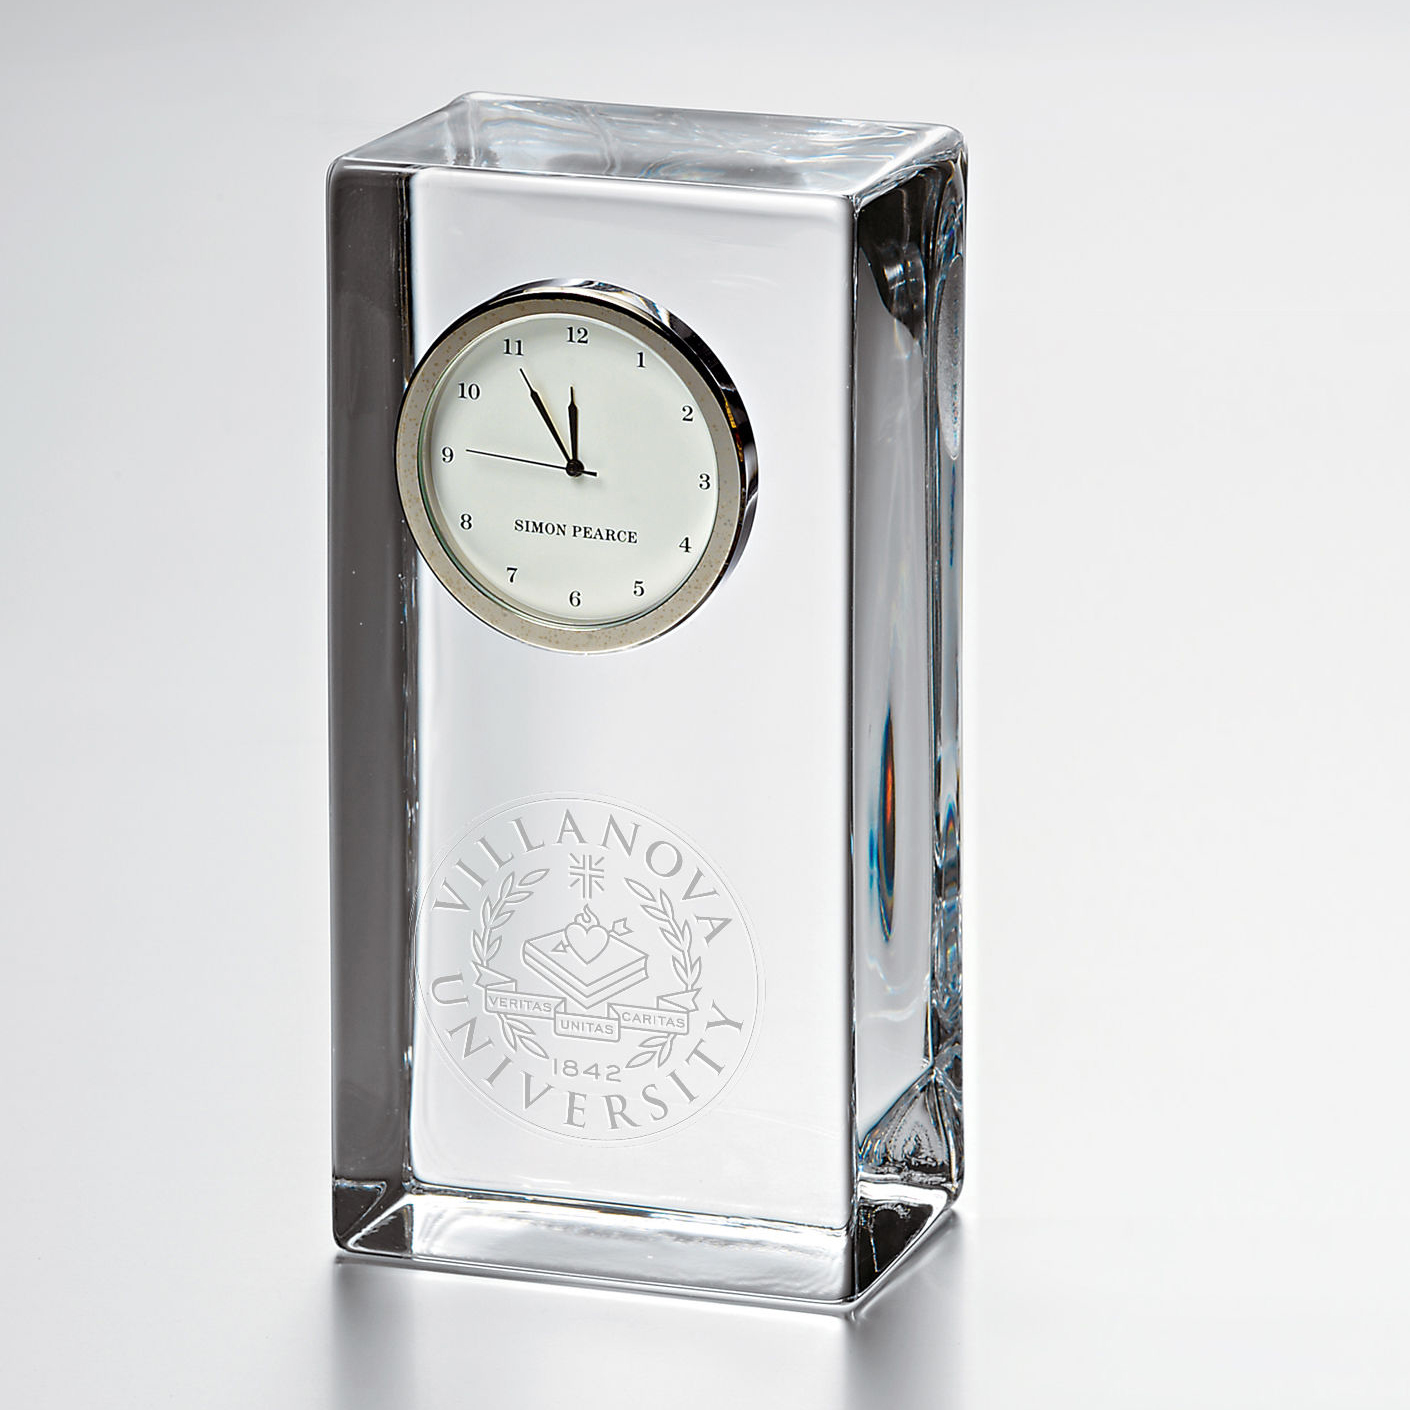 Villanova Tall Glass Desk Clock by Simon Pearce